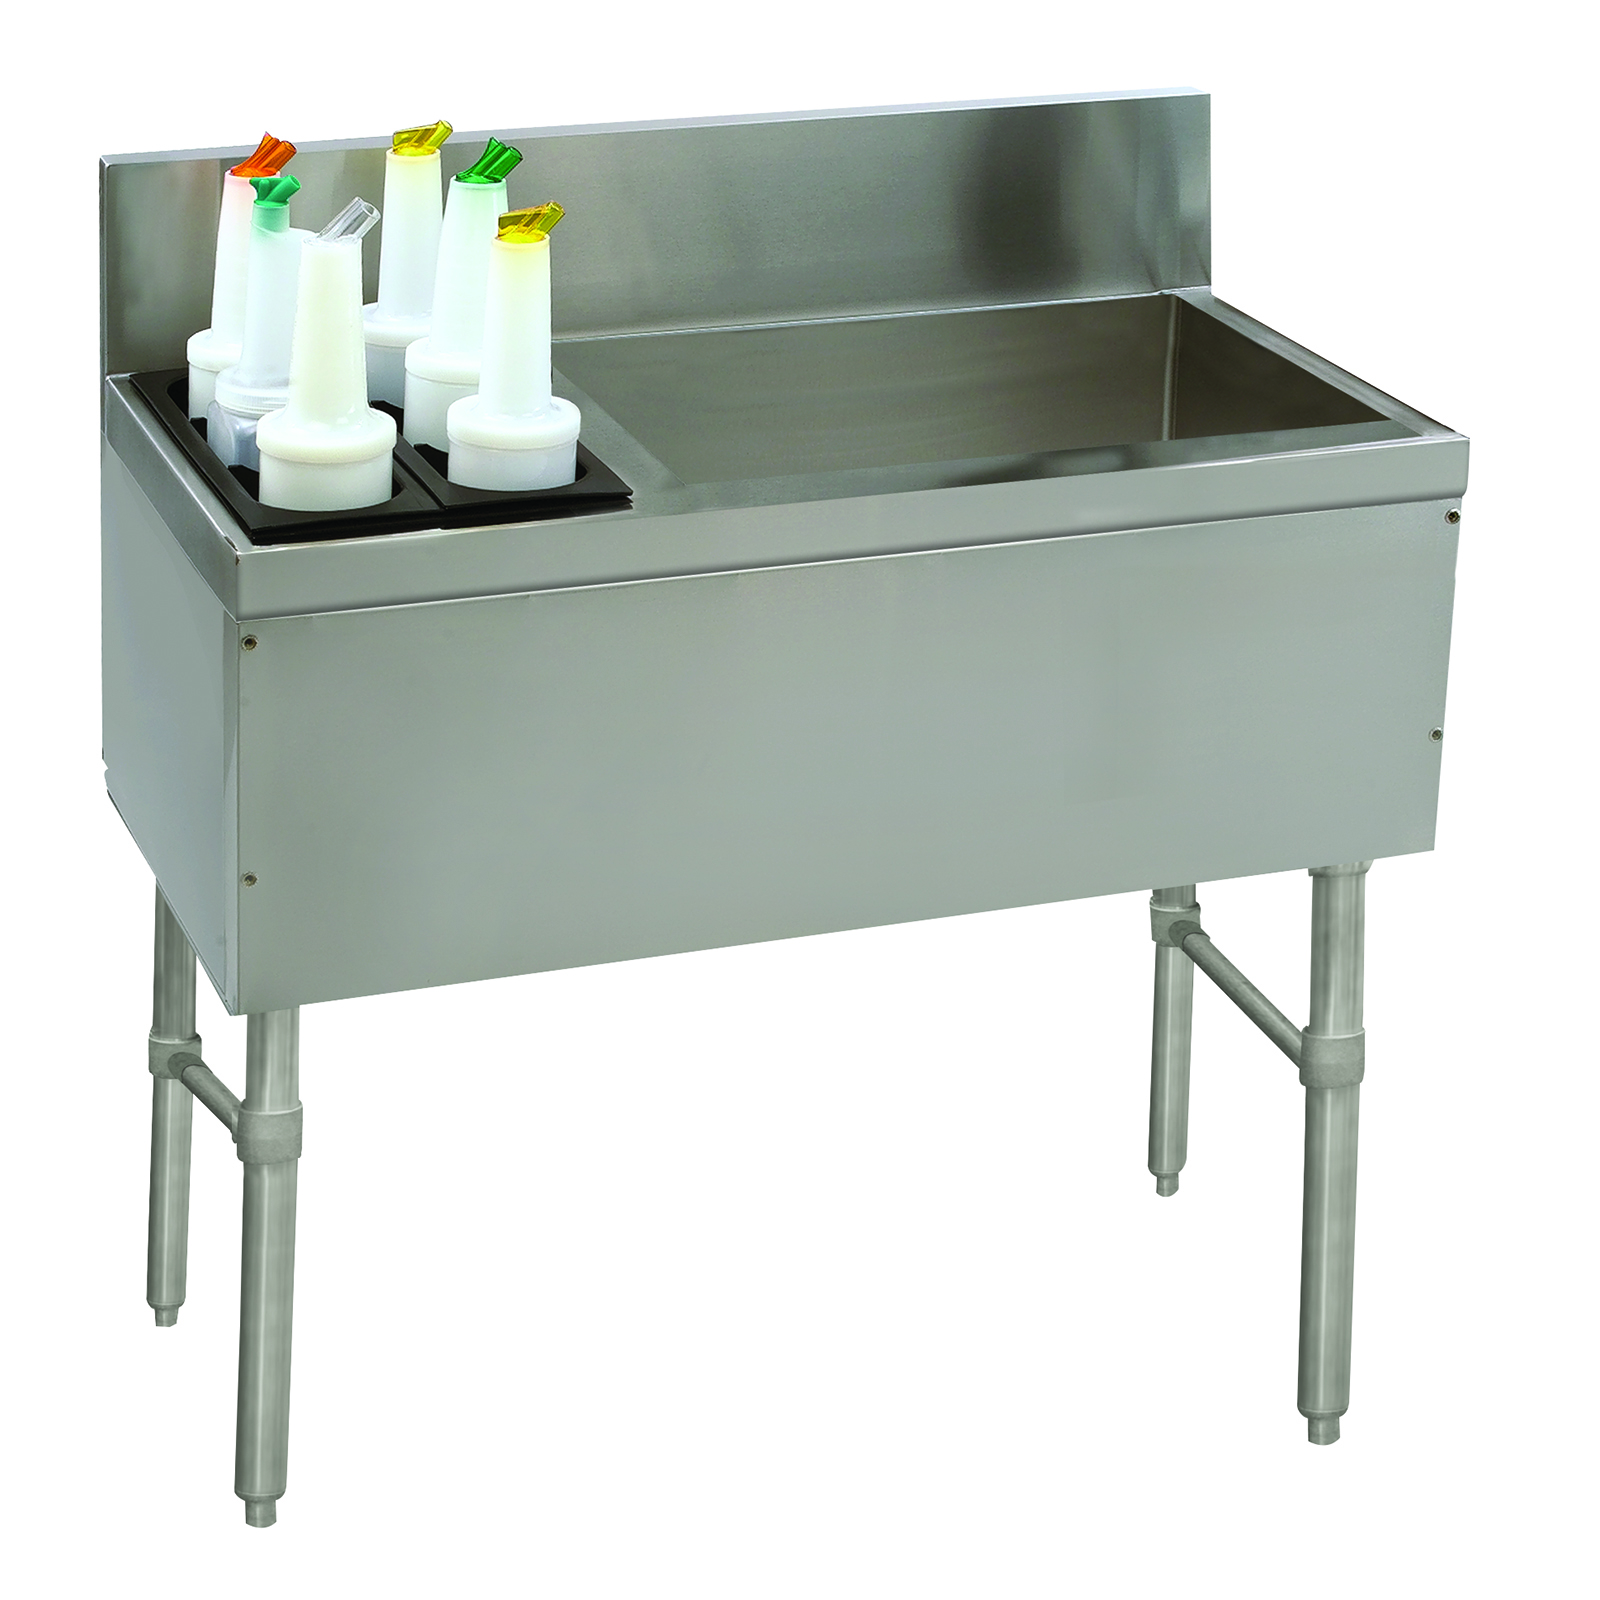 Advance Tabco PRC-19-36R-10 underbar ice bin/cocktail station, bottle well bin